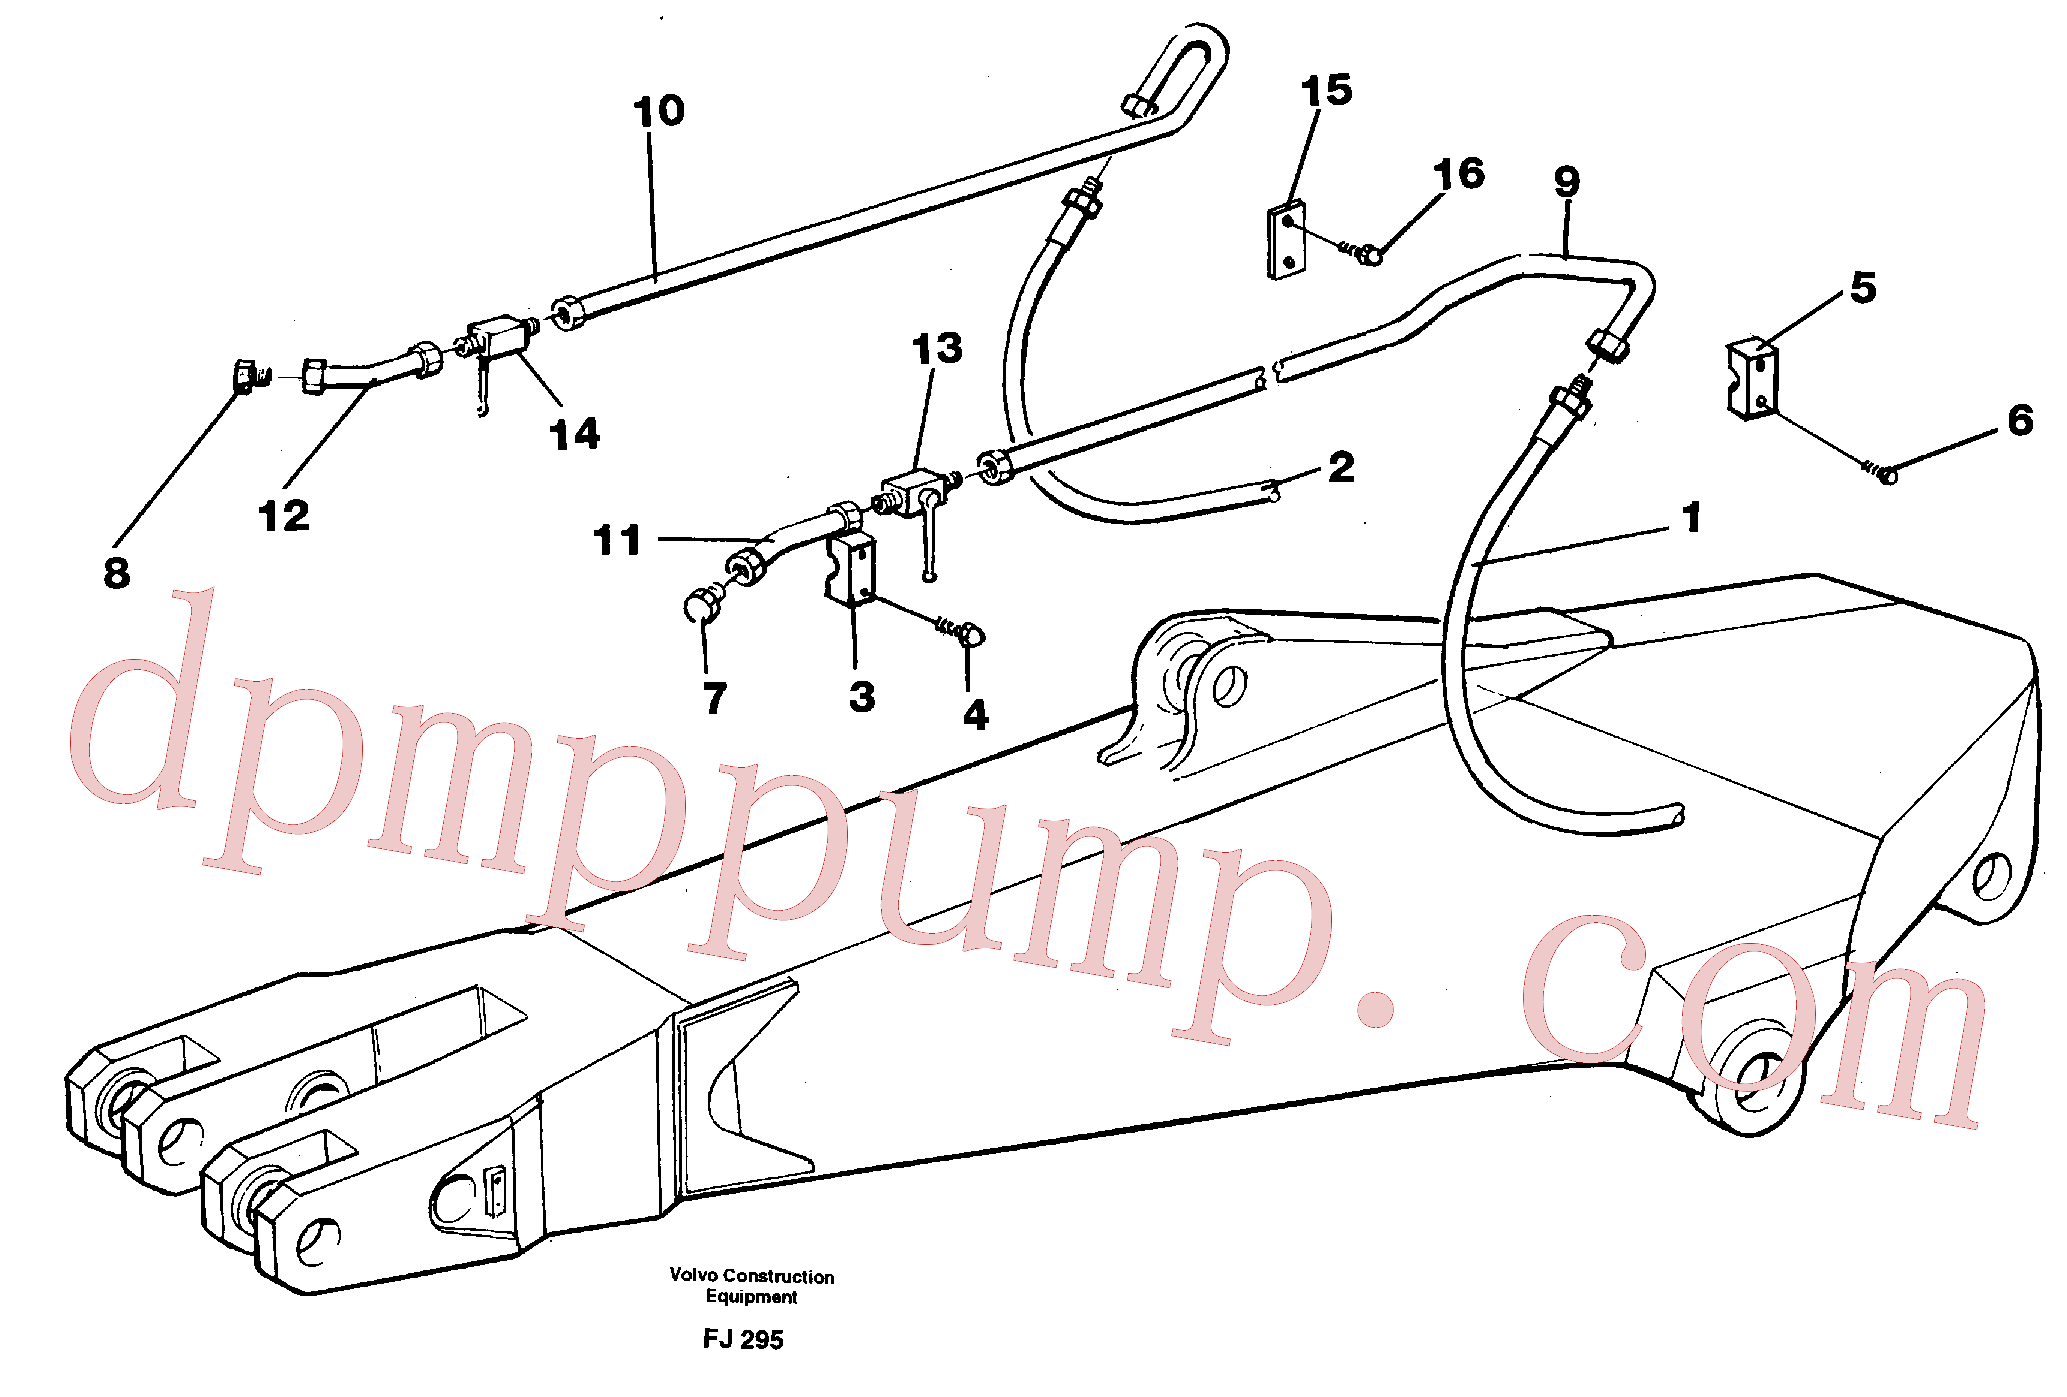 VOE14210940 for Volvo Hammer hydraulics for dipper arm incl. shut-offcocks.(FJ295 assembly)